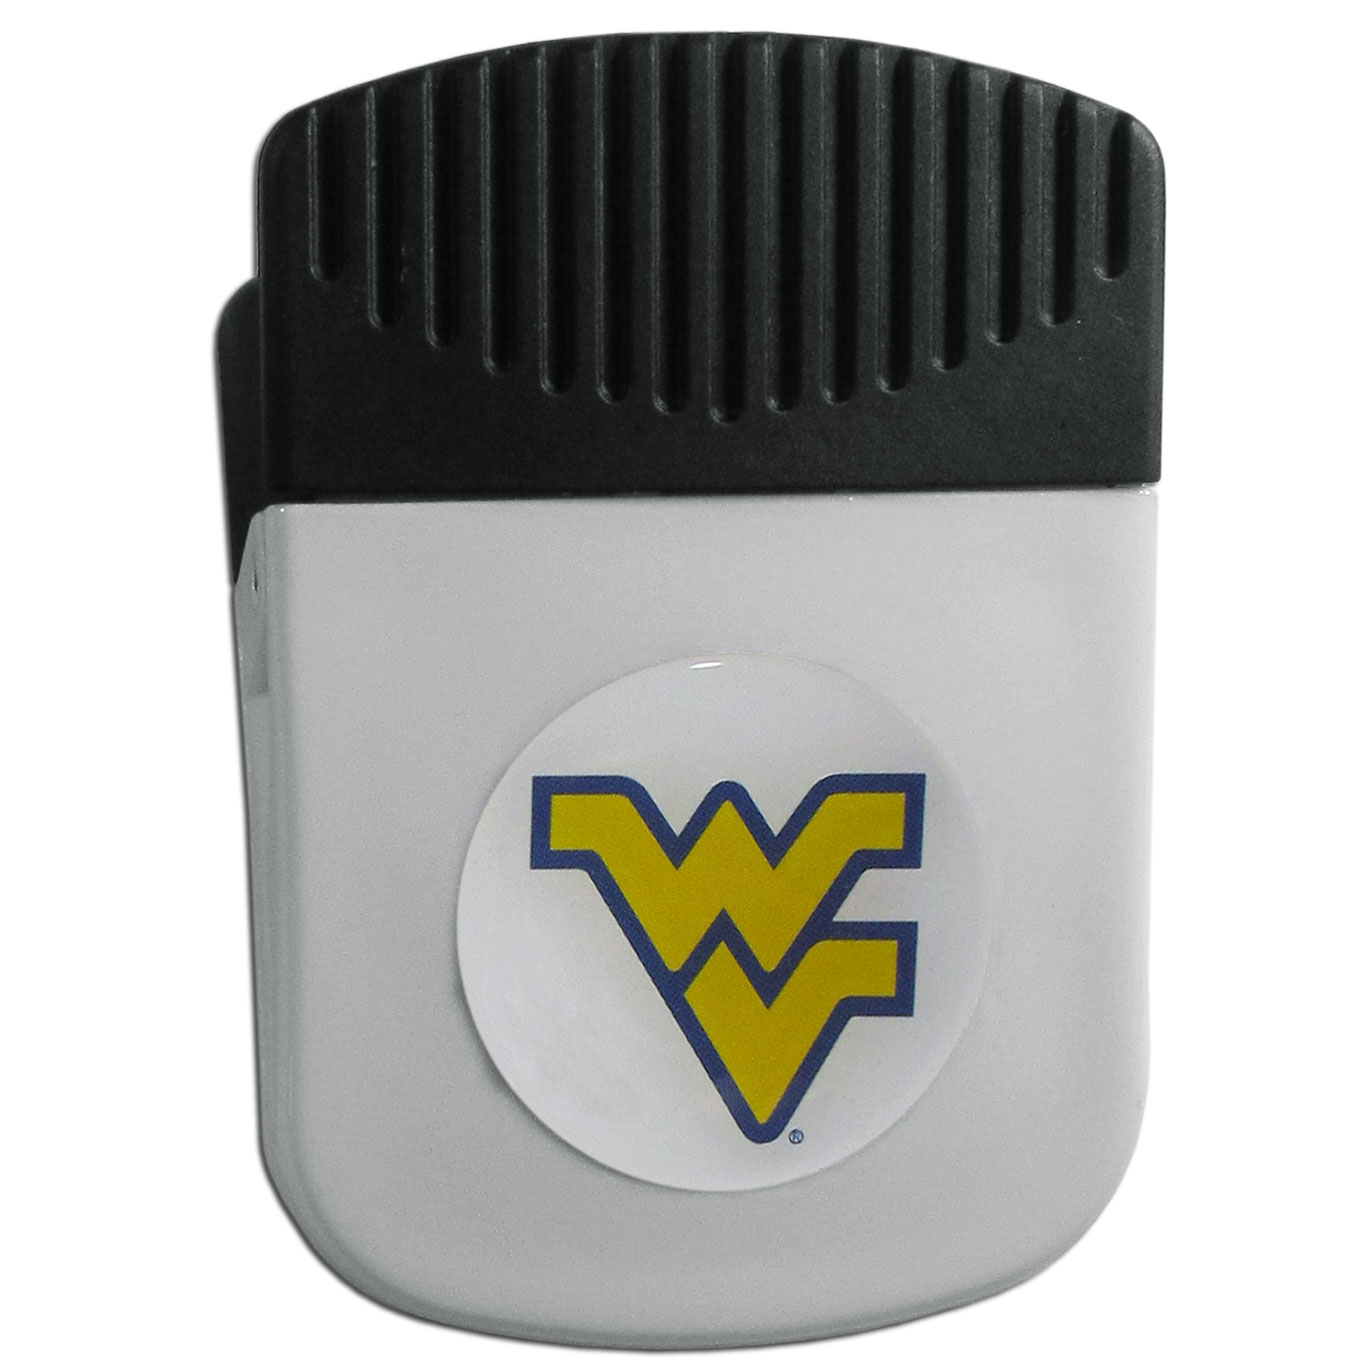 W. Virginia Mountaineers Chip Clip Magnet - Use this attractive clip magnet to hold memos, photos or appointment cards on the fridge or take it down keep use it to clip bags shut. The magnet features a domed W. Virginia Mountaineers logo.